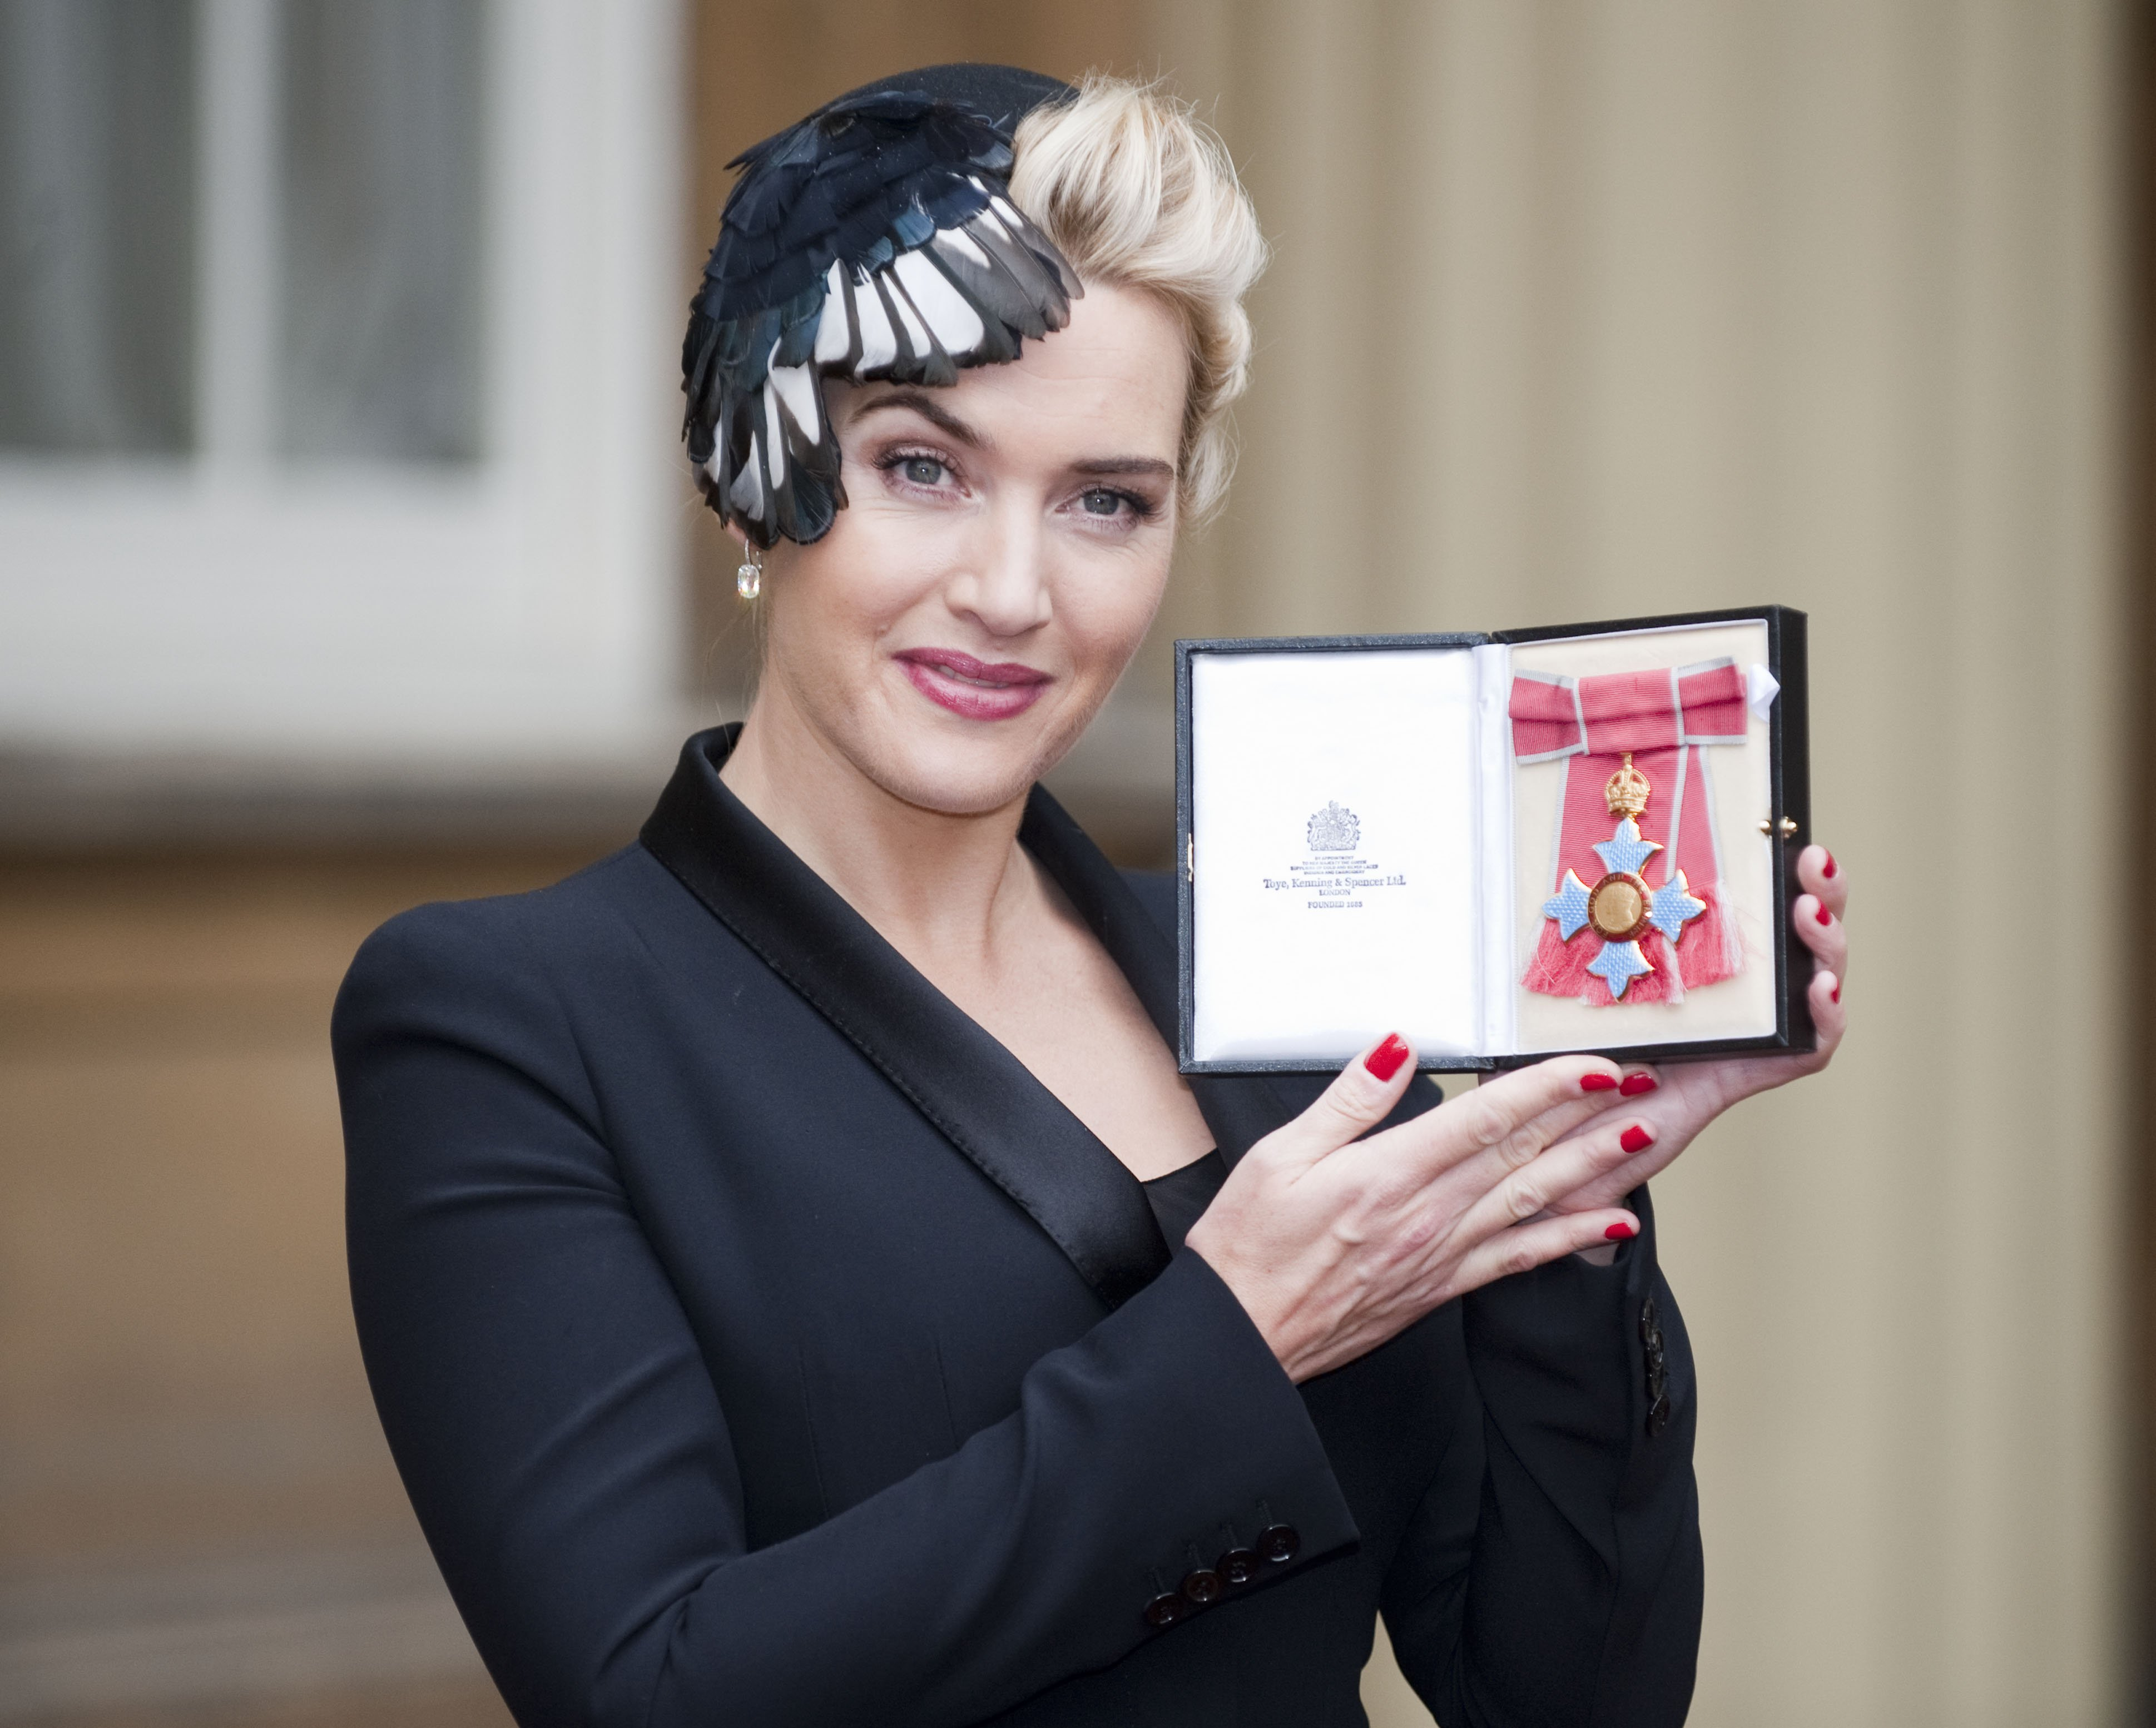 Kate Winslet holds her CBE, which was awarded to her by Queen Elizabeth II during an Investiture ceremony at Buckingham Palace on November 21, 2012. | Photo: Getty Images